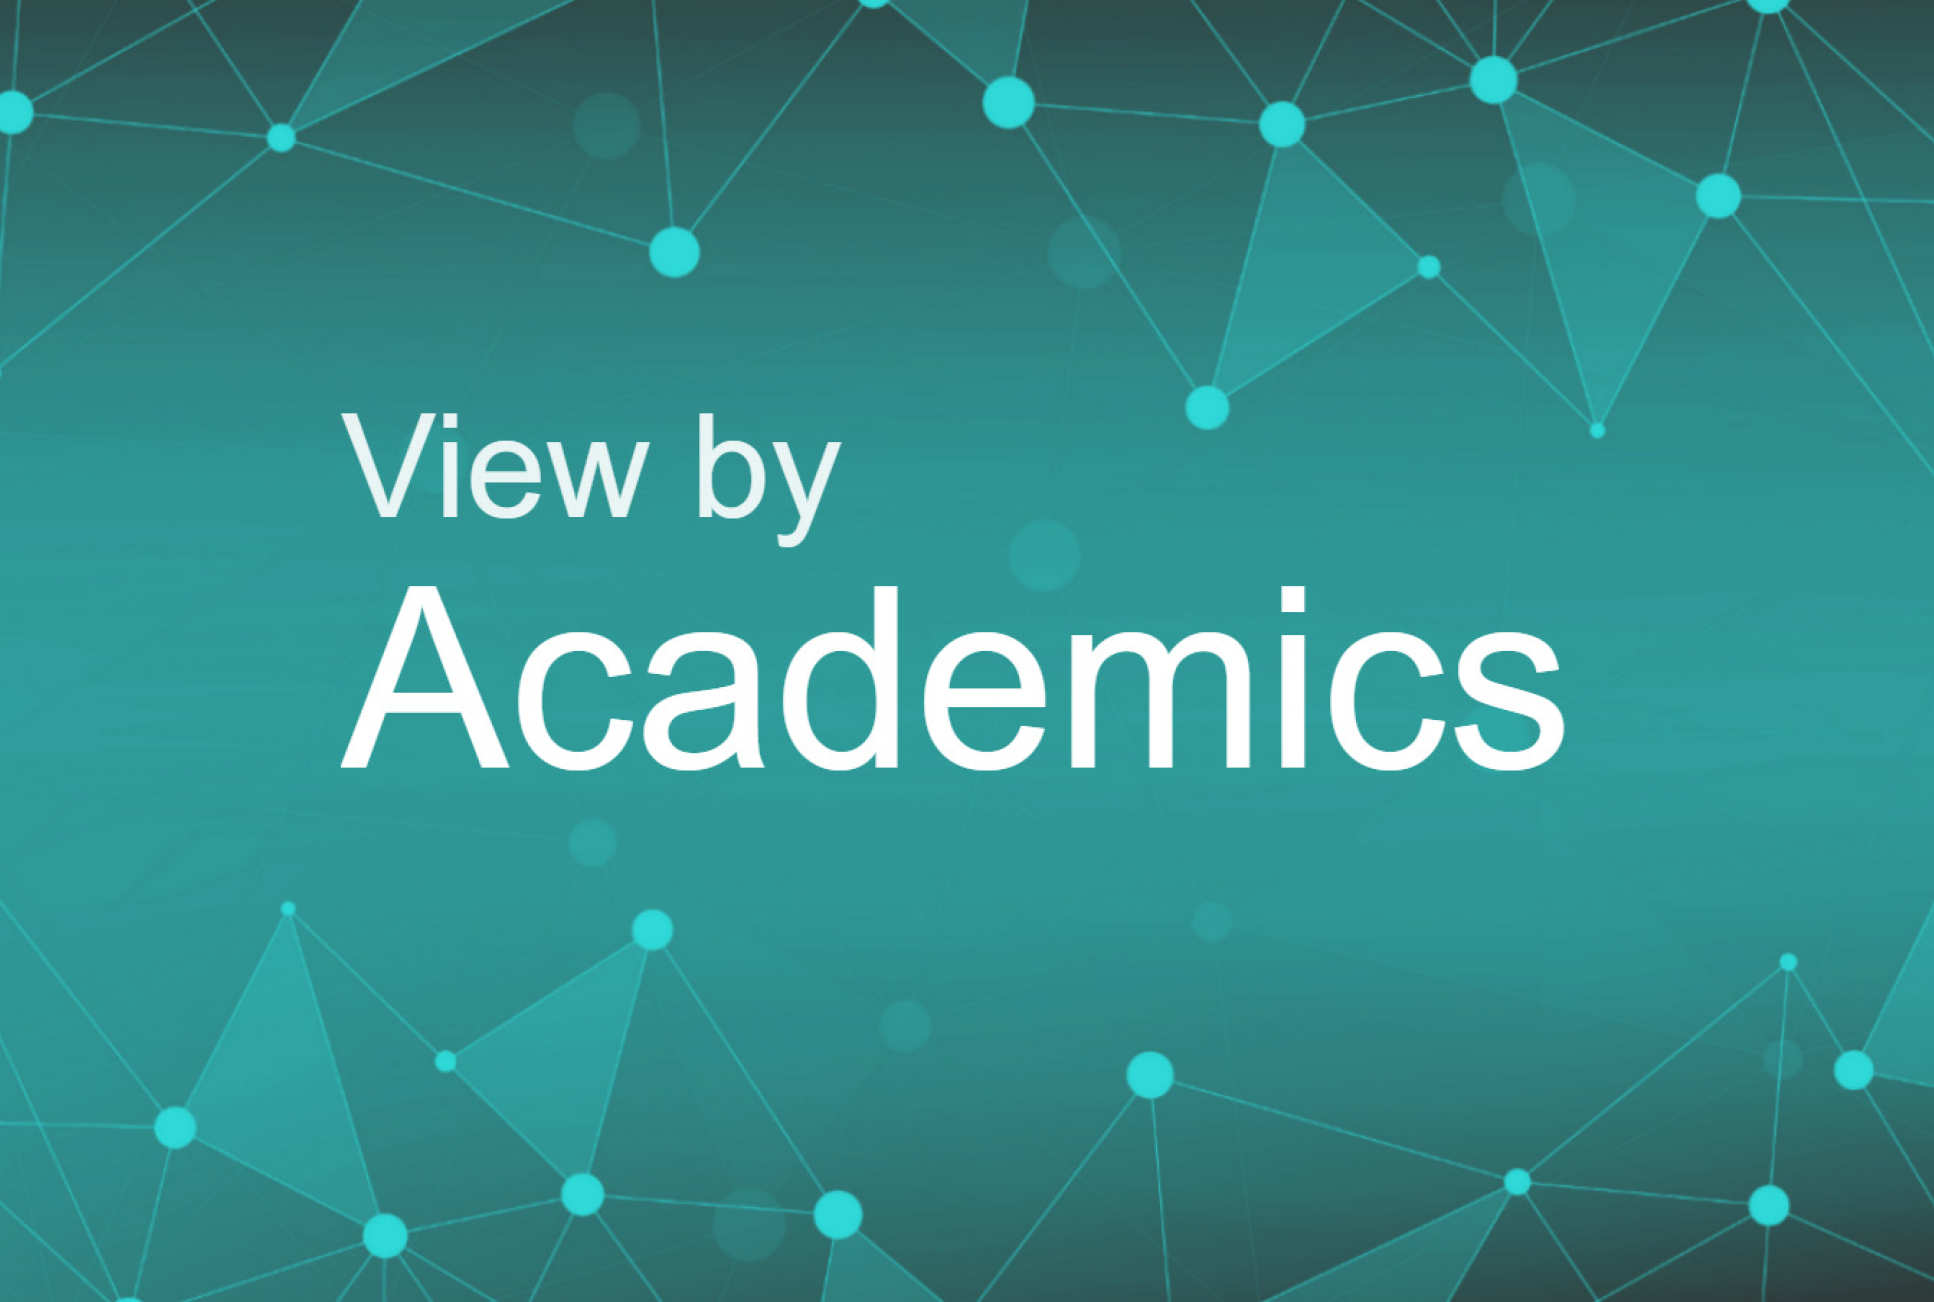 Research network by academics